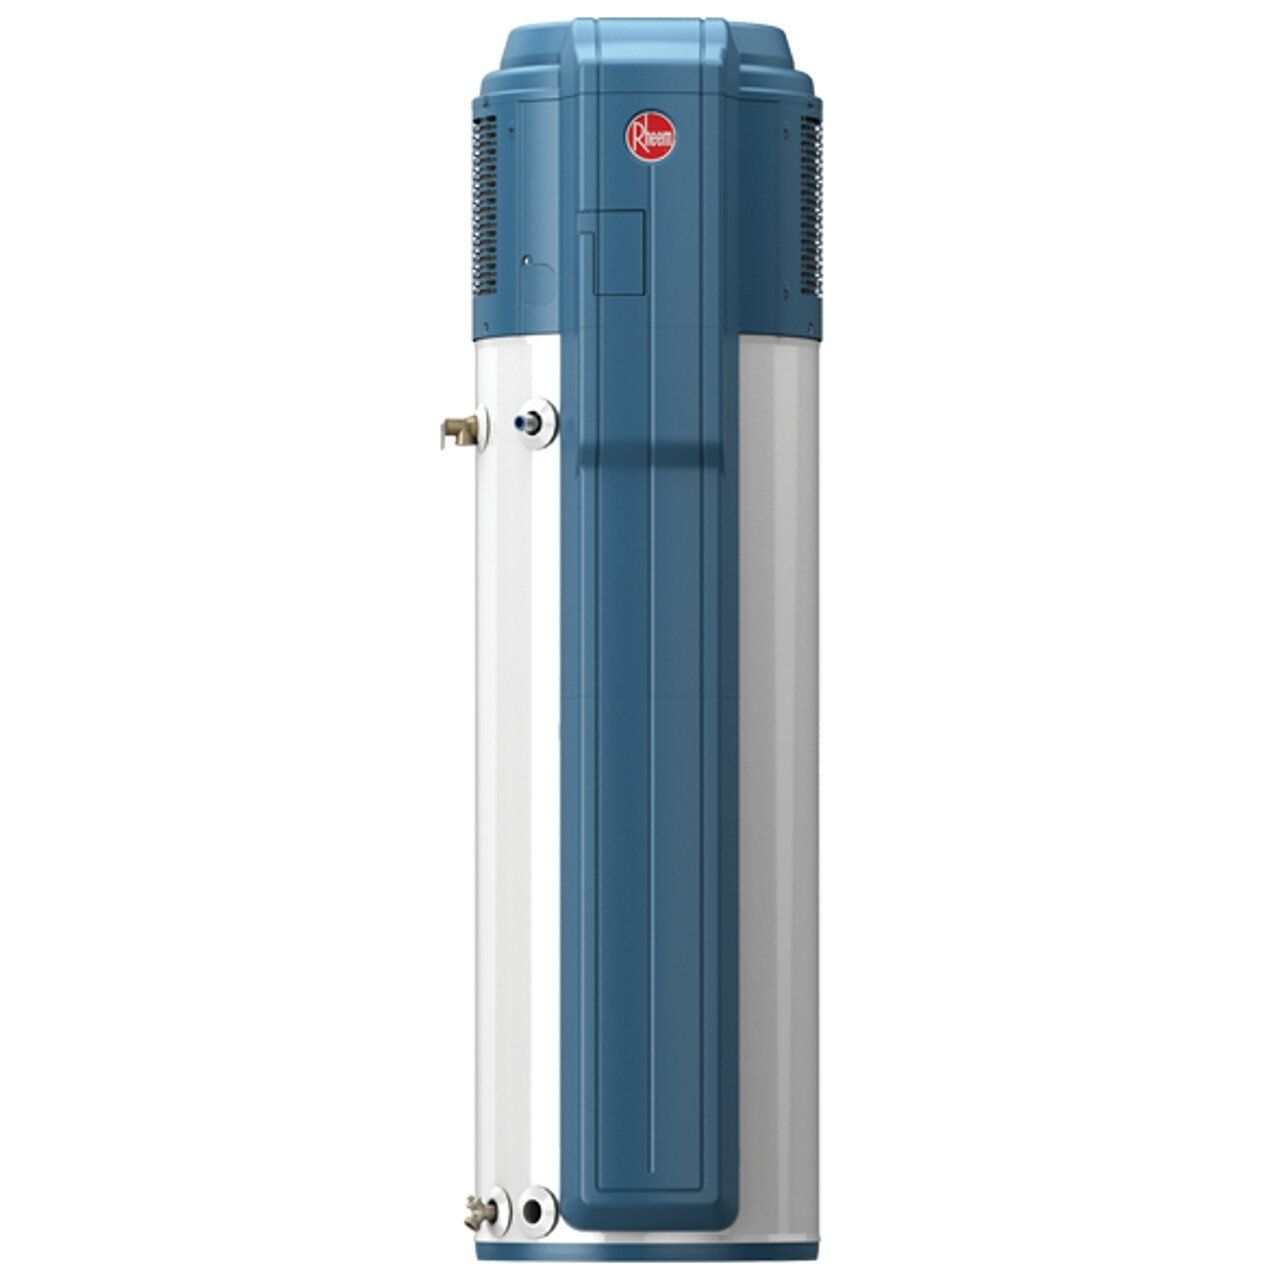 Water Heaters The Best Of 2019